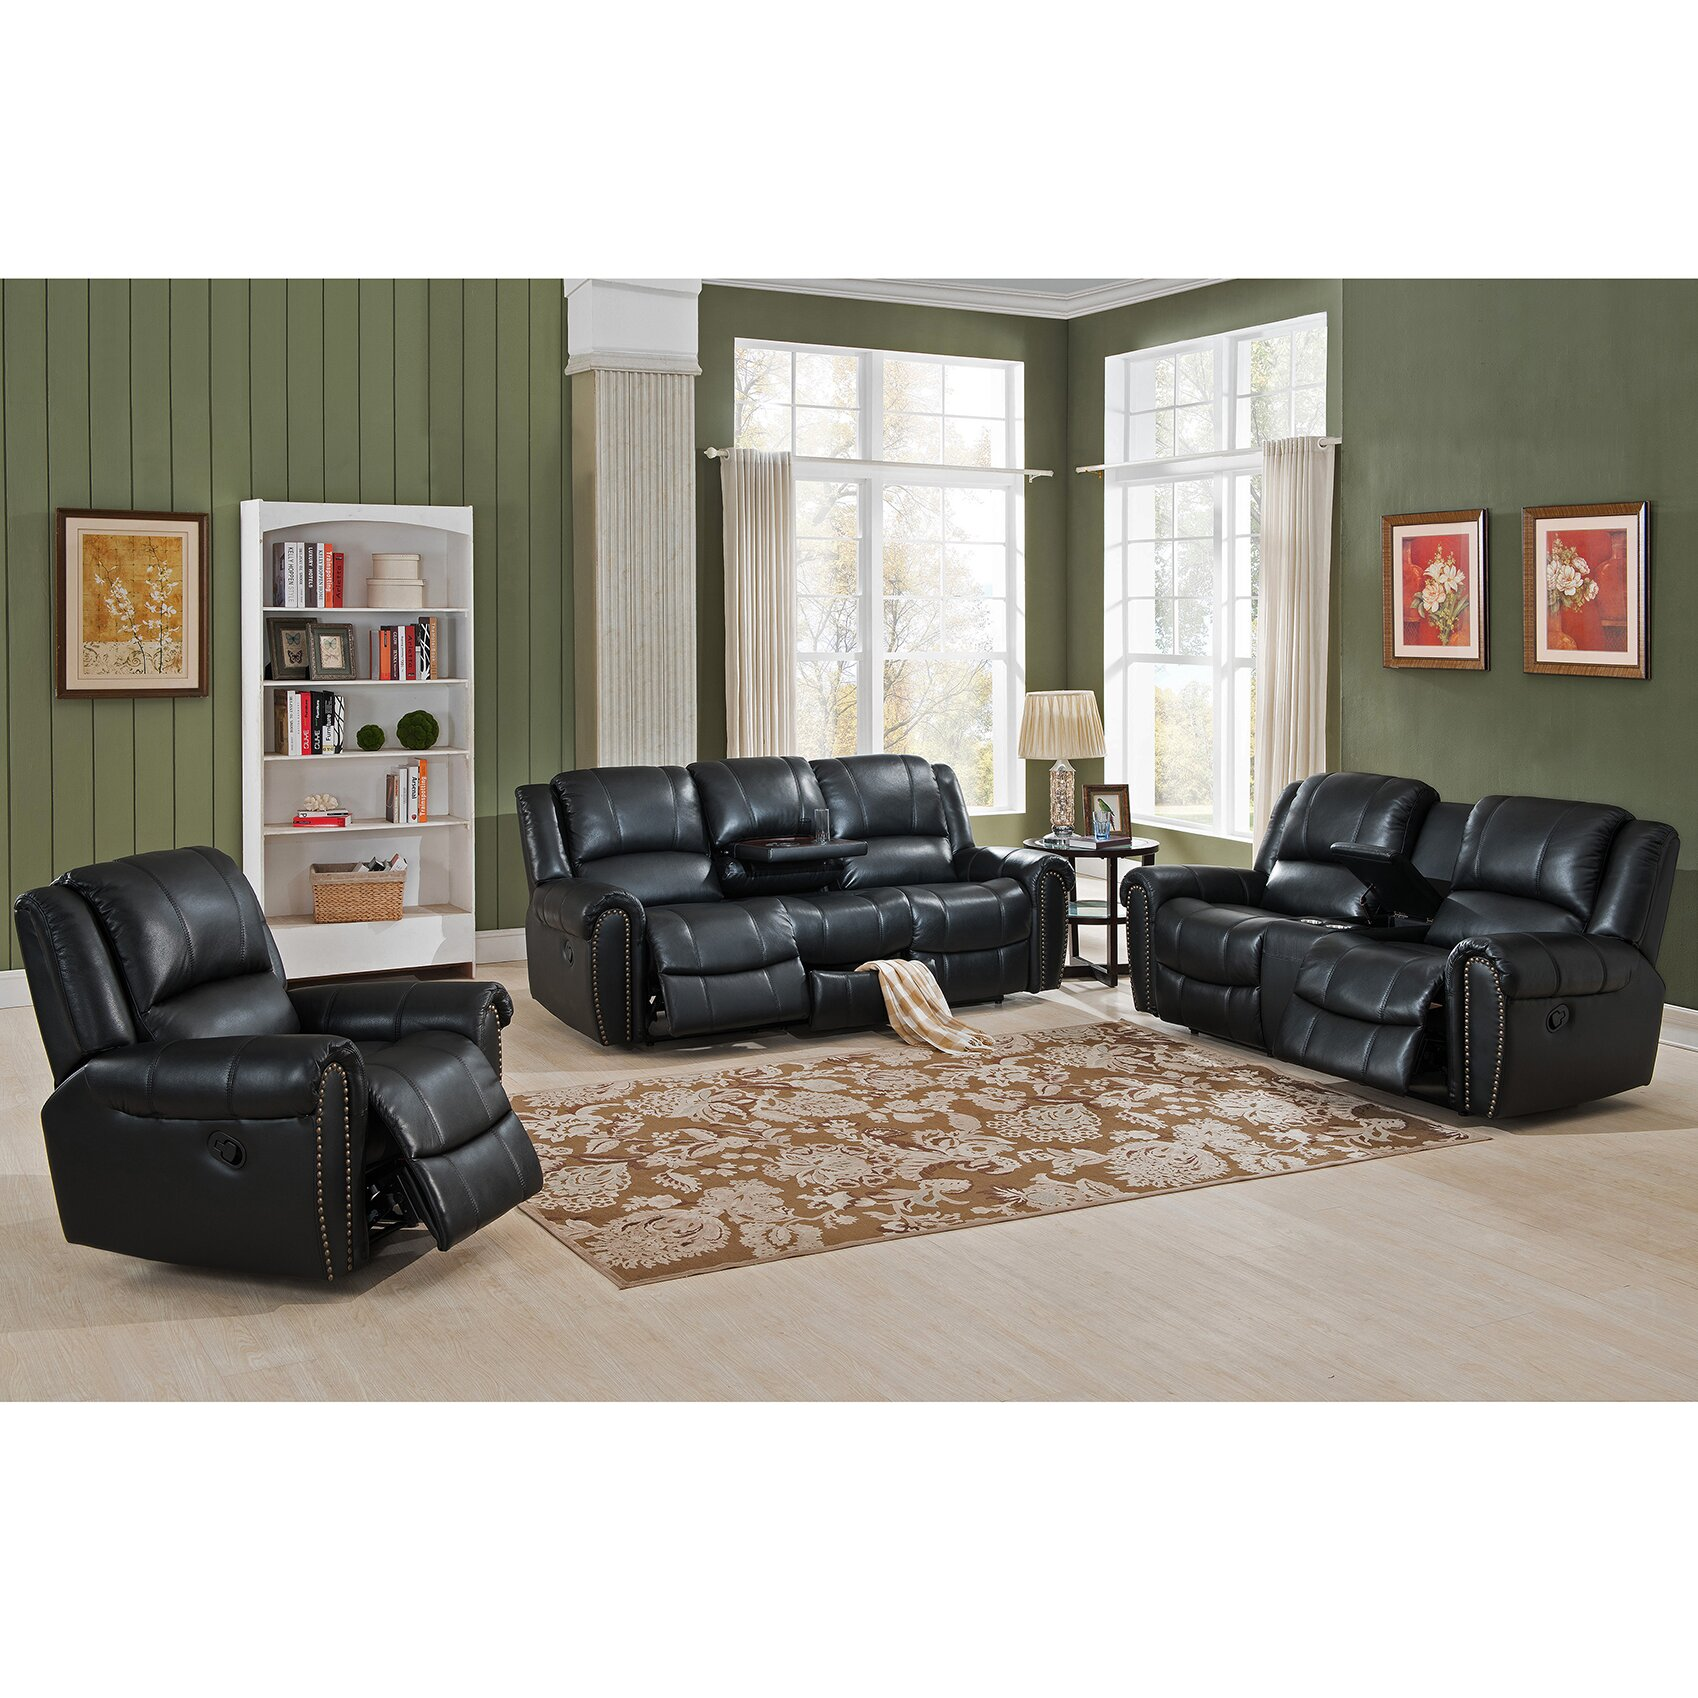 Amax houston 3 piece leather recliner living room set for Three piece leather living room set